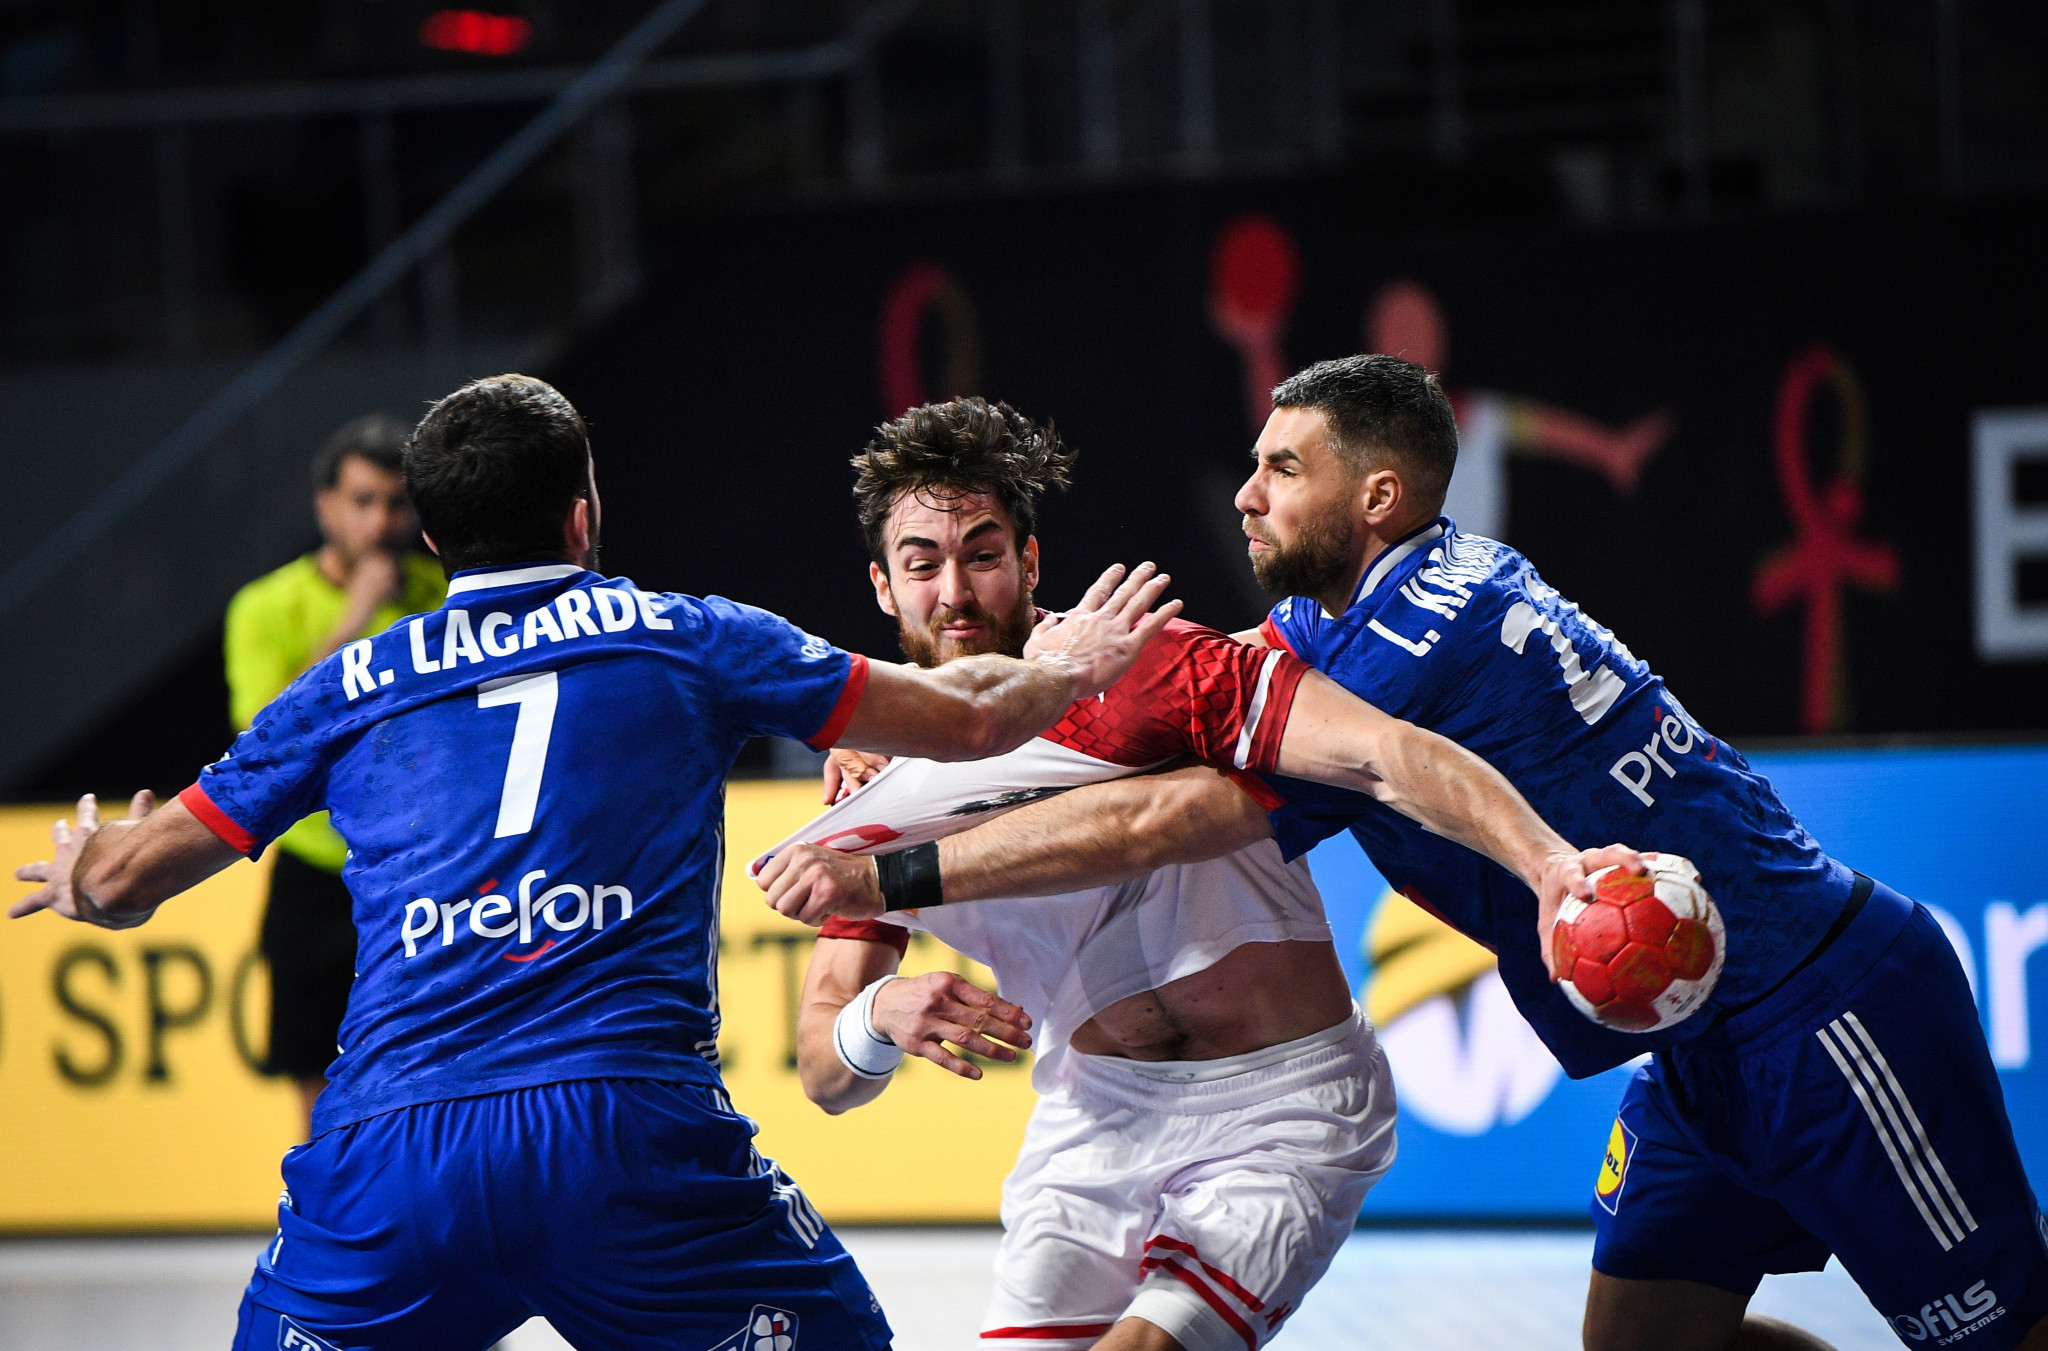 France were among the sides to qualify for the main round as the IHF World Men's Handball Championship continued in Egypt ©Handball Egypt